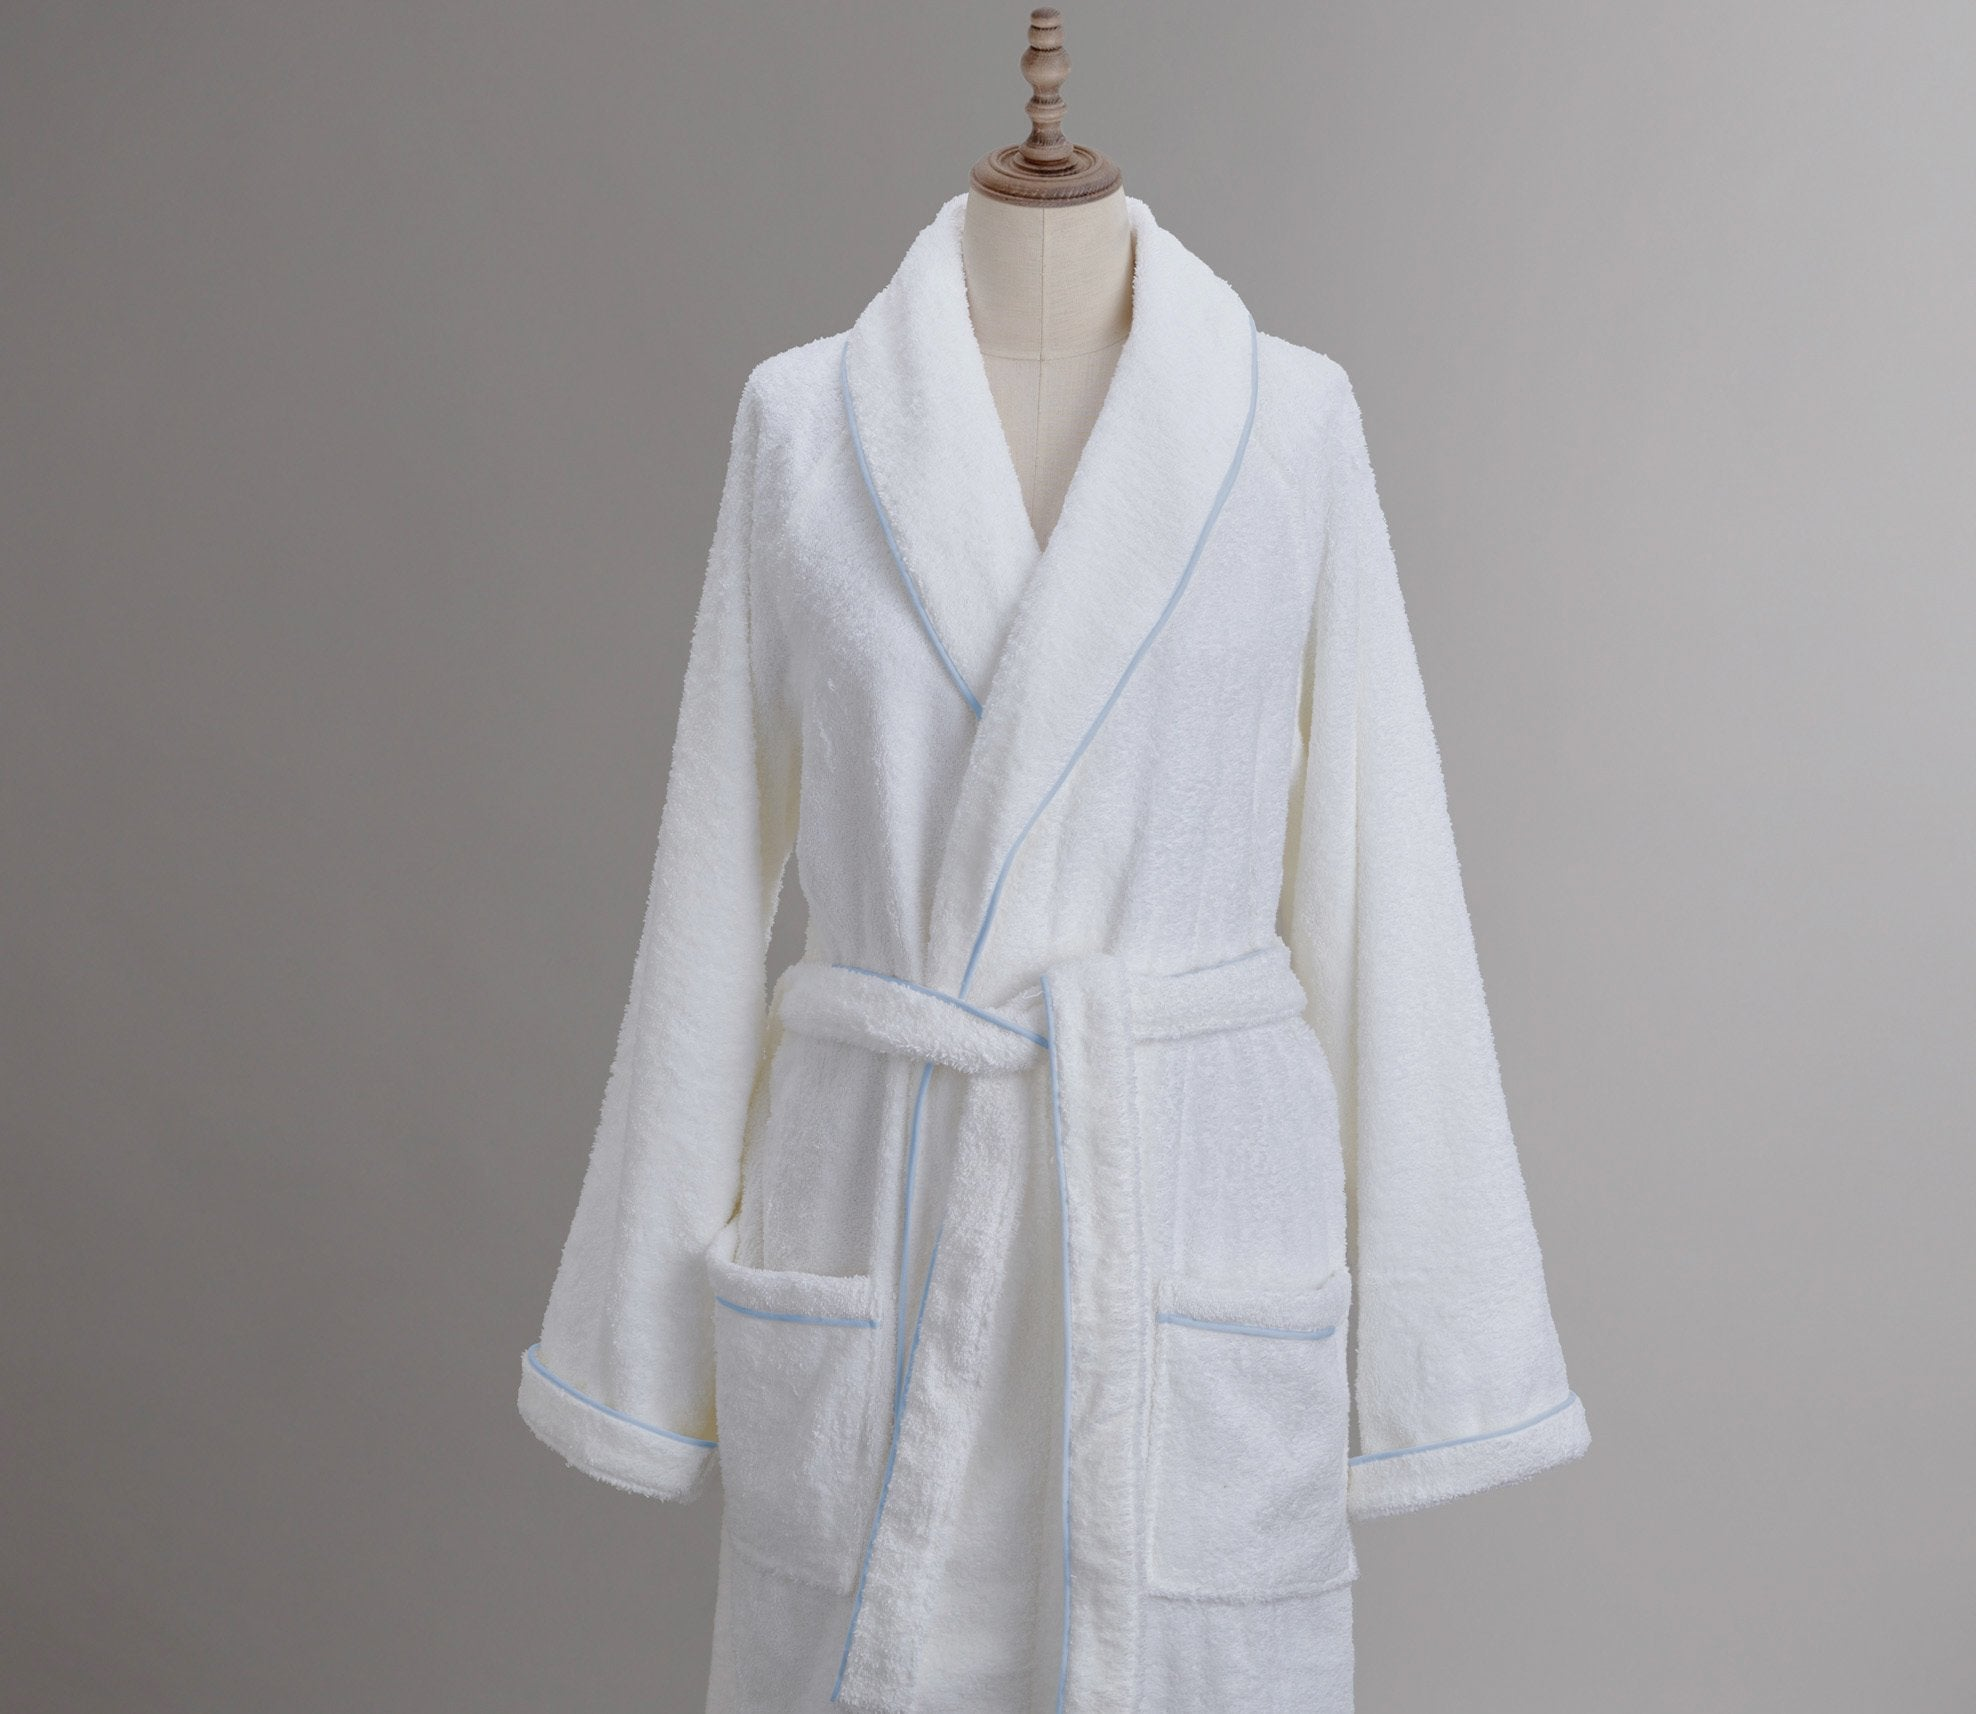 Cairo Robe White Custom Large Product Image 1